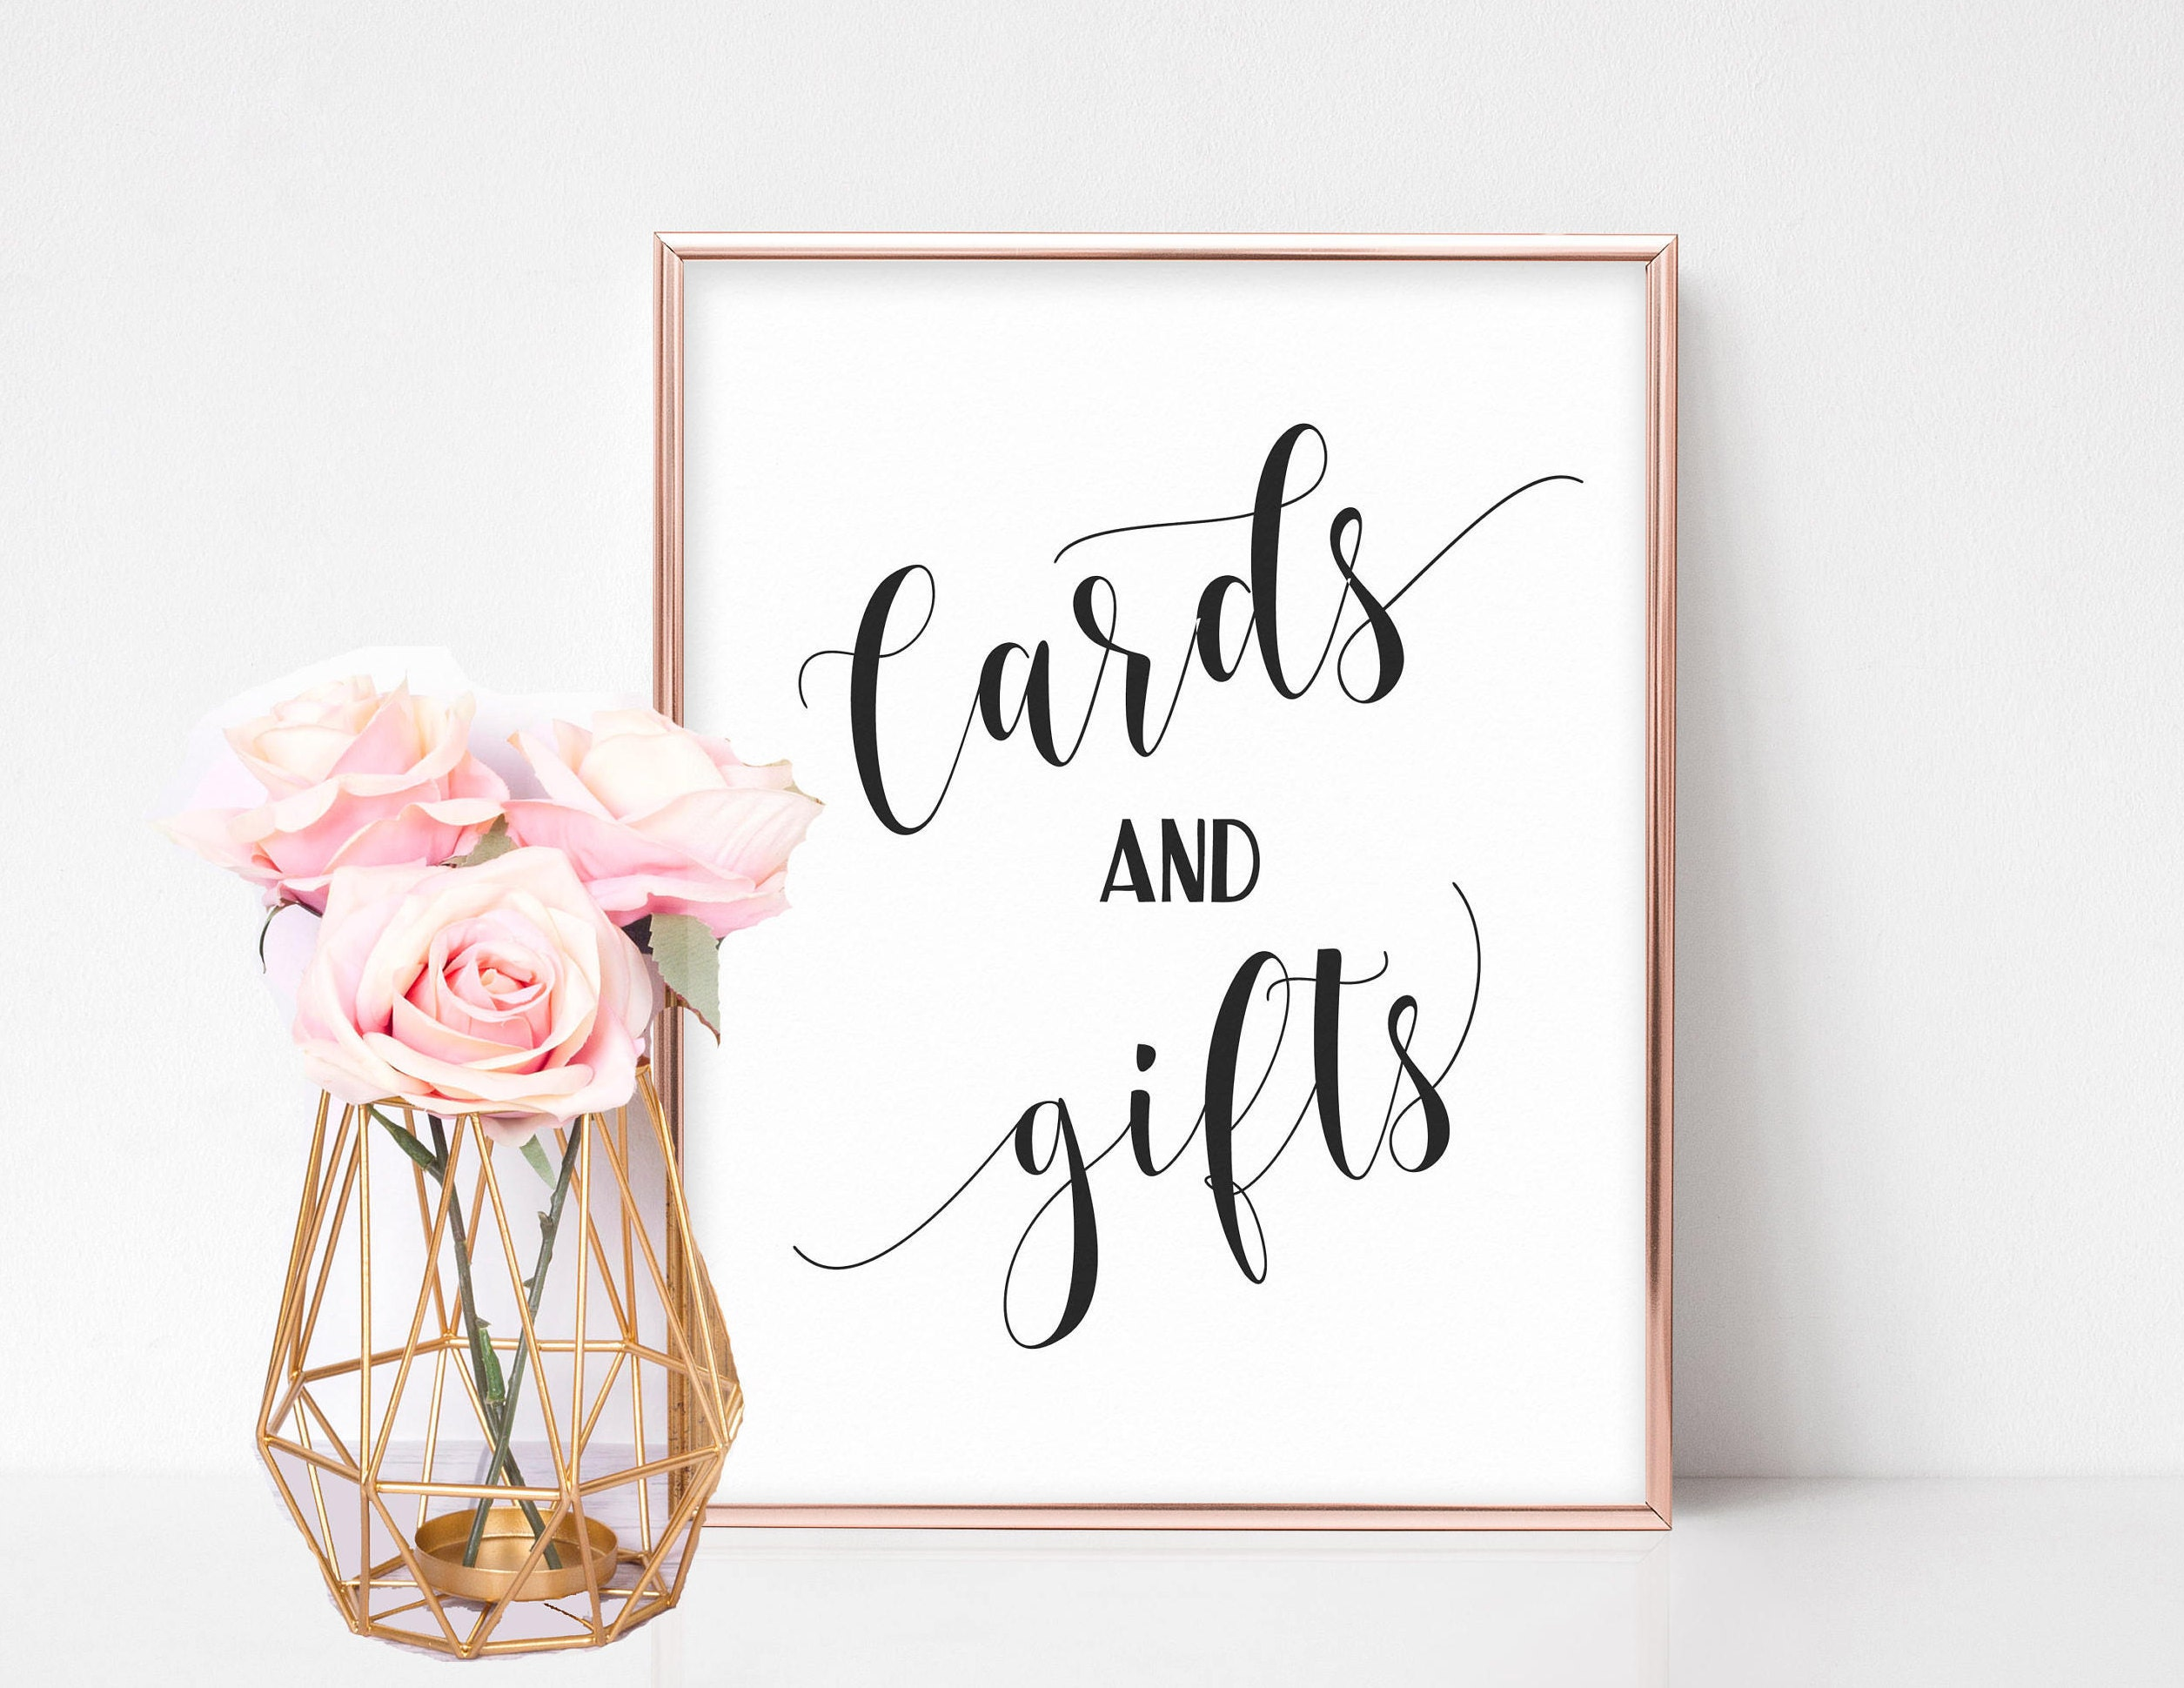 Cards and Gifts Wedding Sign, Cards and Gifts Sign, Cards and Gifts Printable, Wedding Gifts Sign, Cards Sign Wedding, Bridal Shower Signs